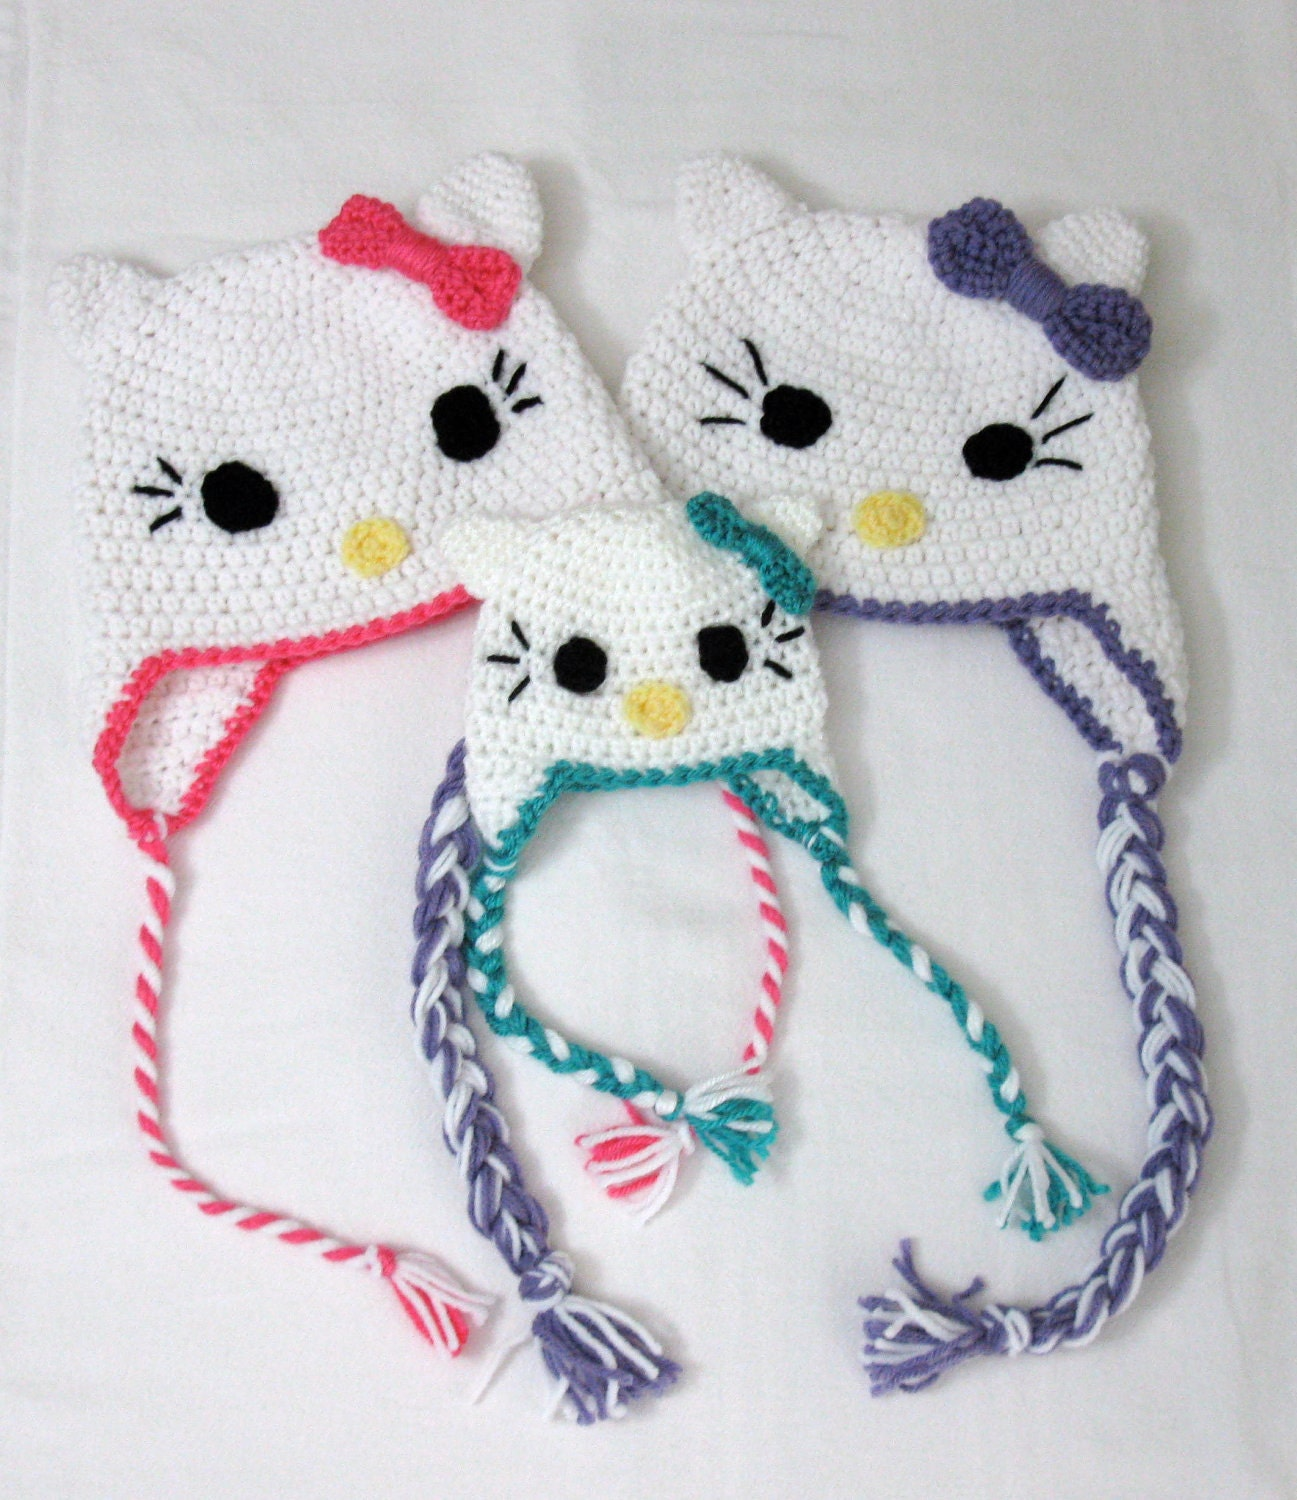 HELLO KITTY CROCHET PATTERN ? Crochet For Beginners